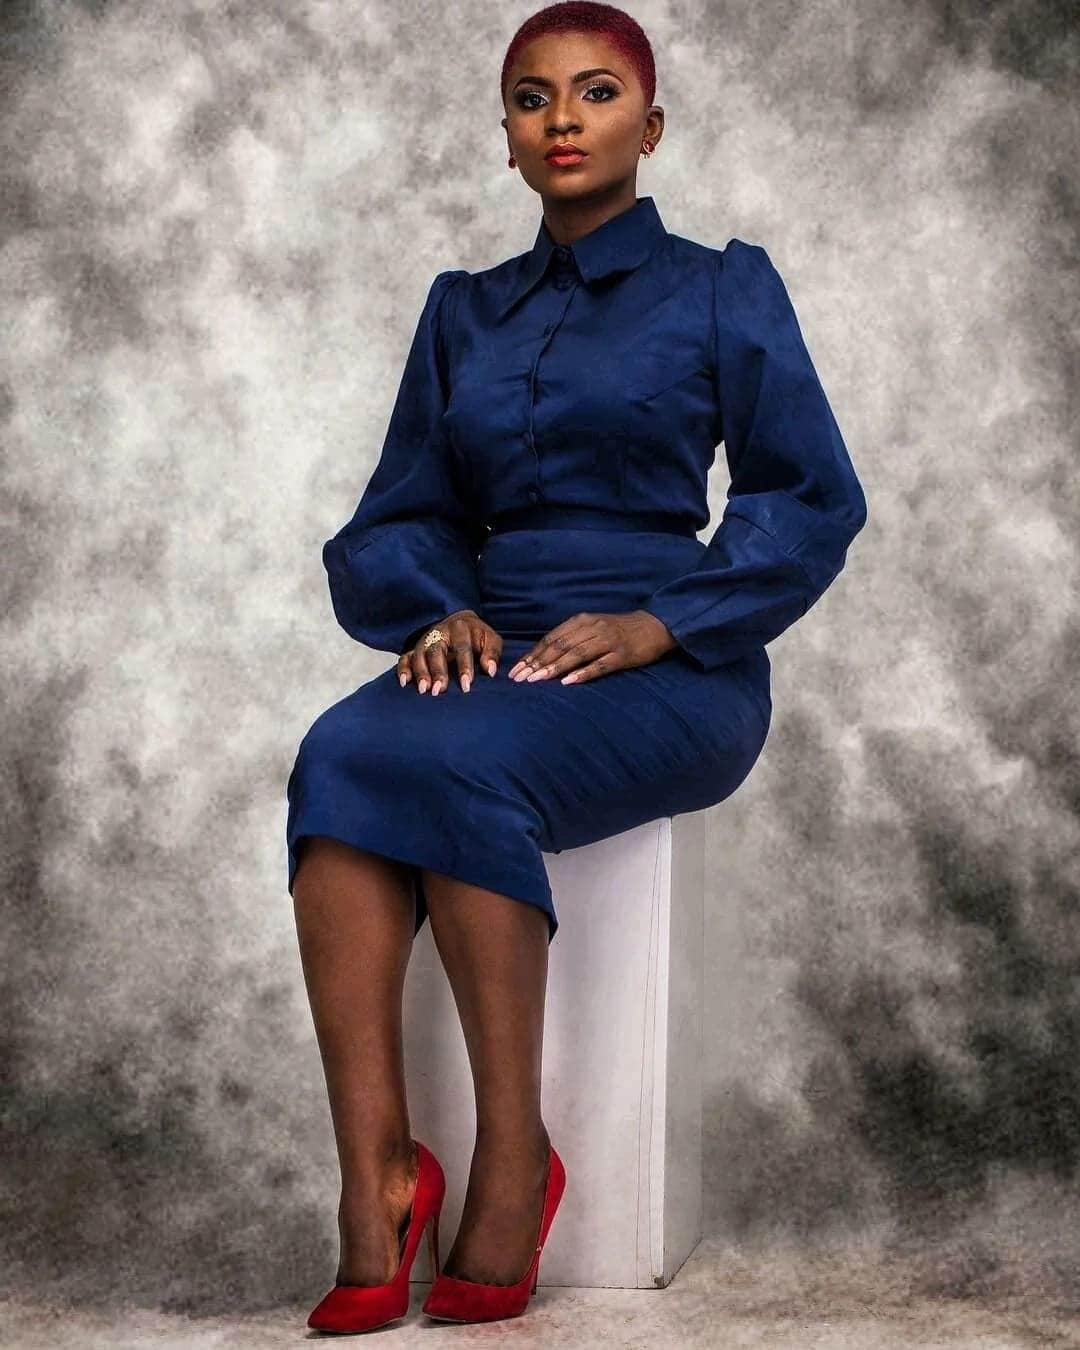 Ahuofe Patri is looking stunning in doll-like photo